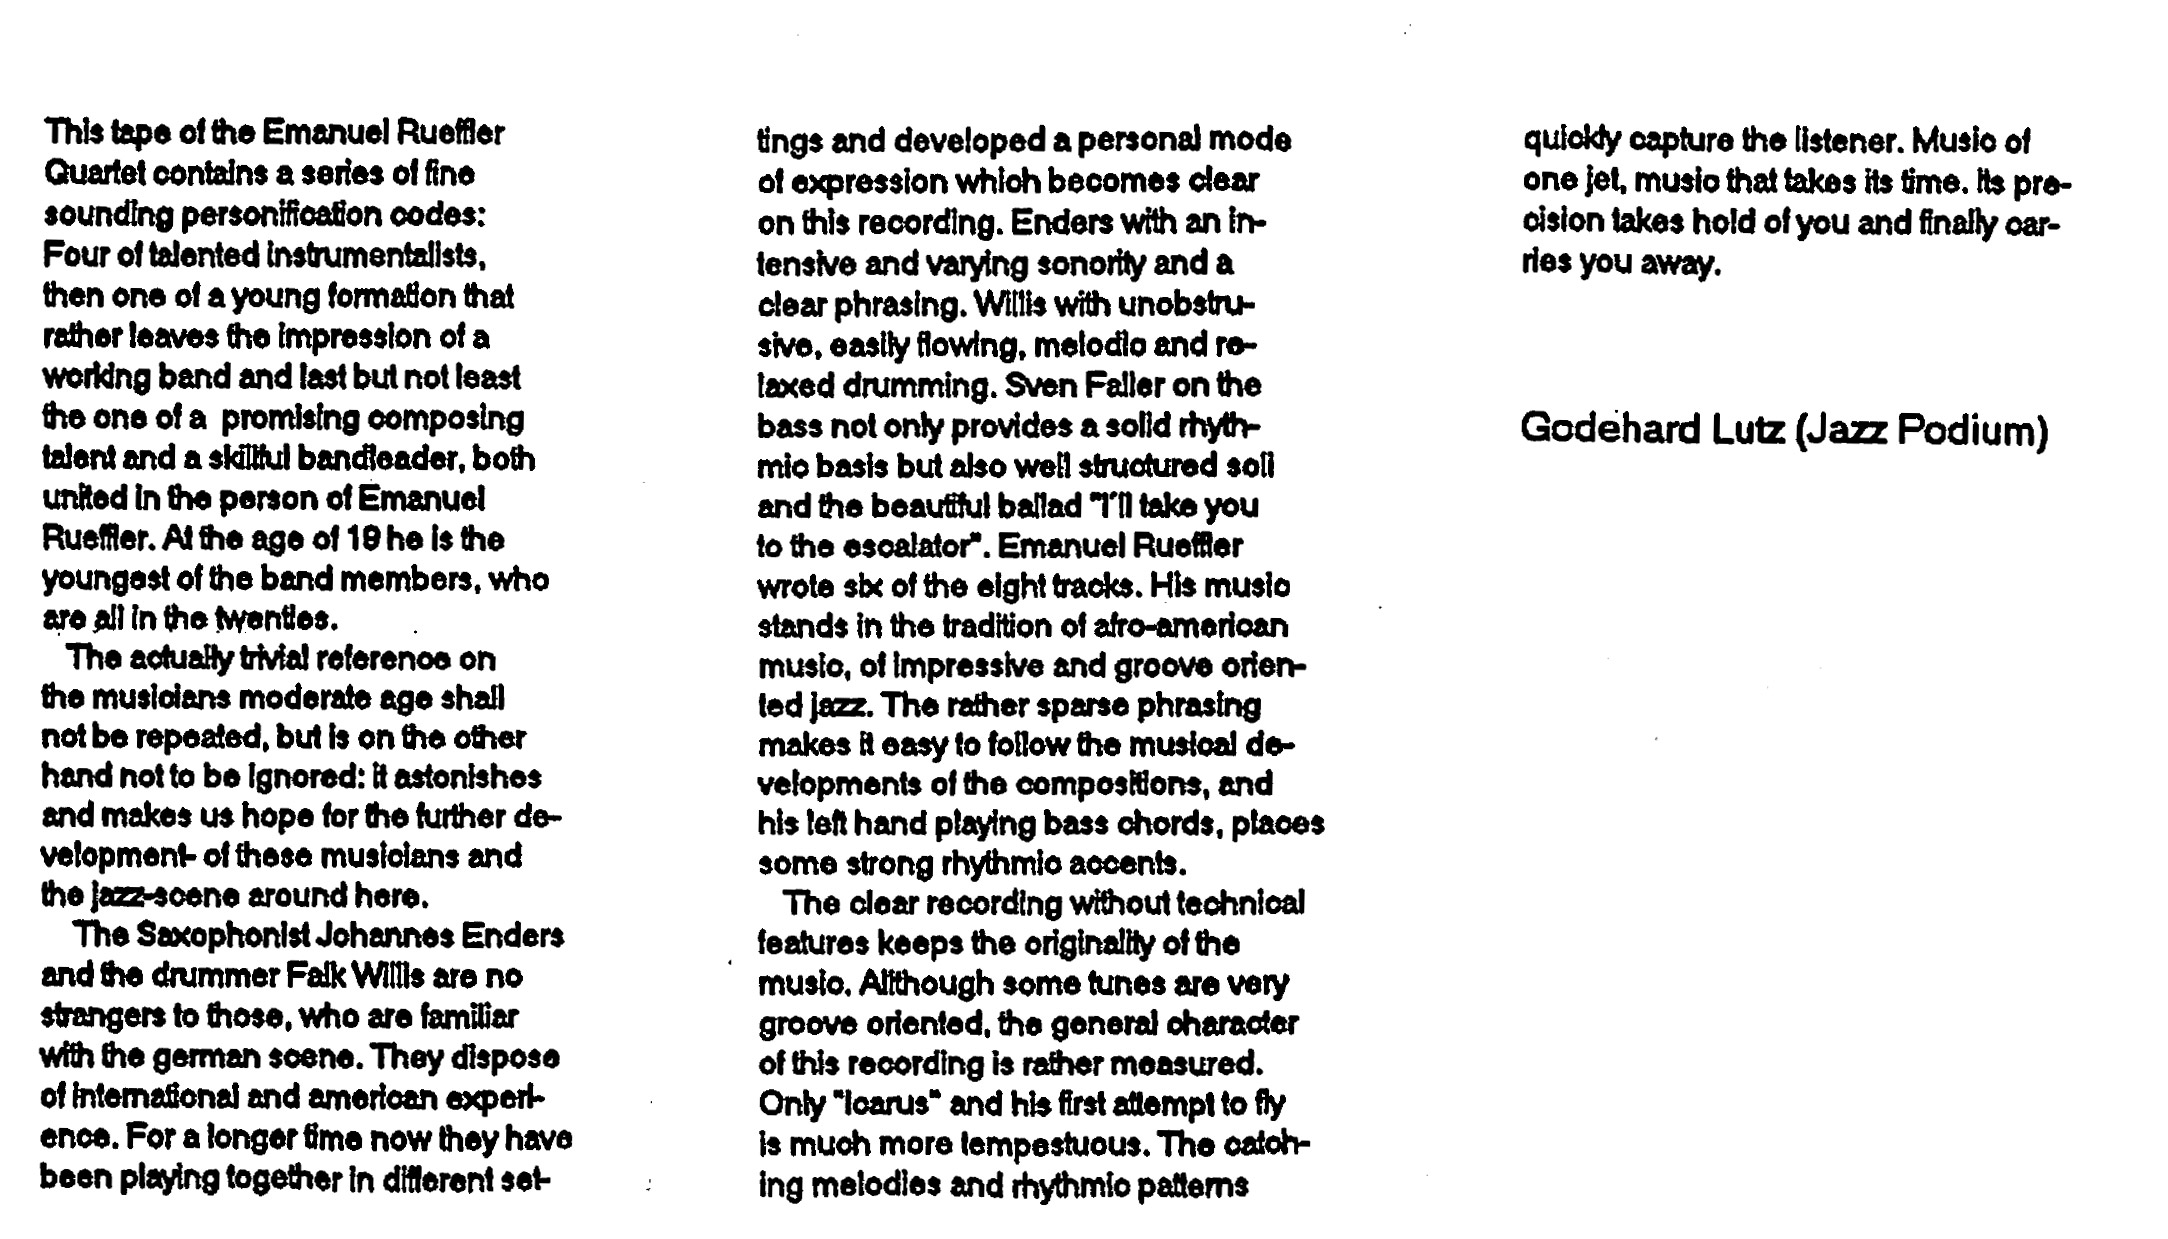 Quartet 718 Liner Notes by Godehard Lutz